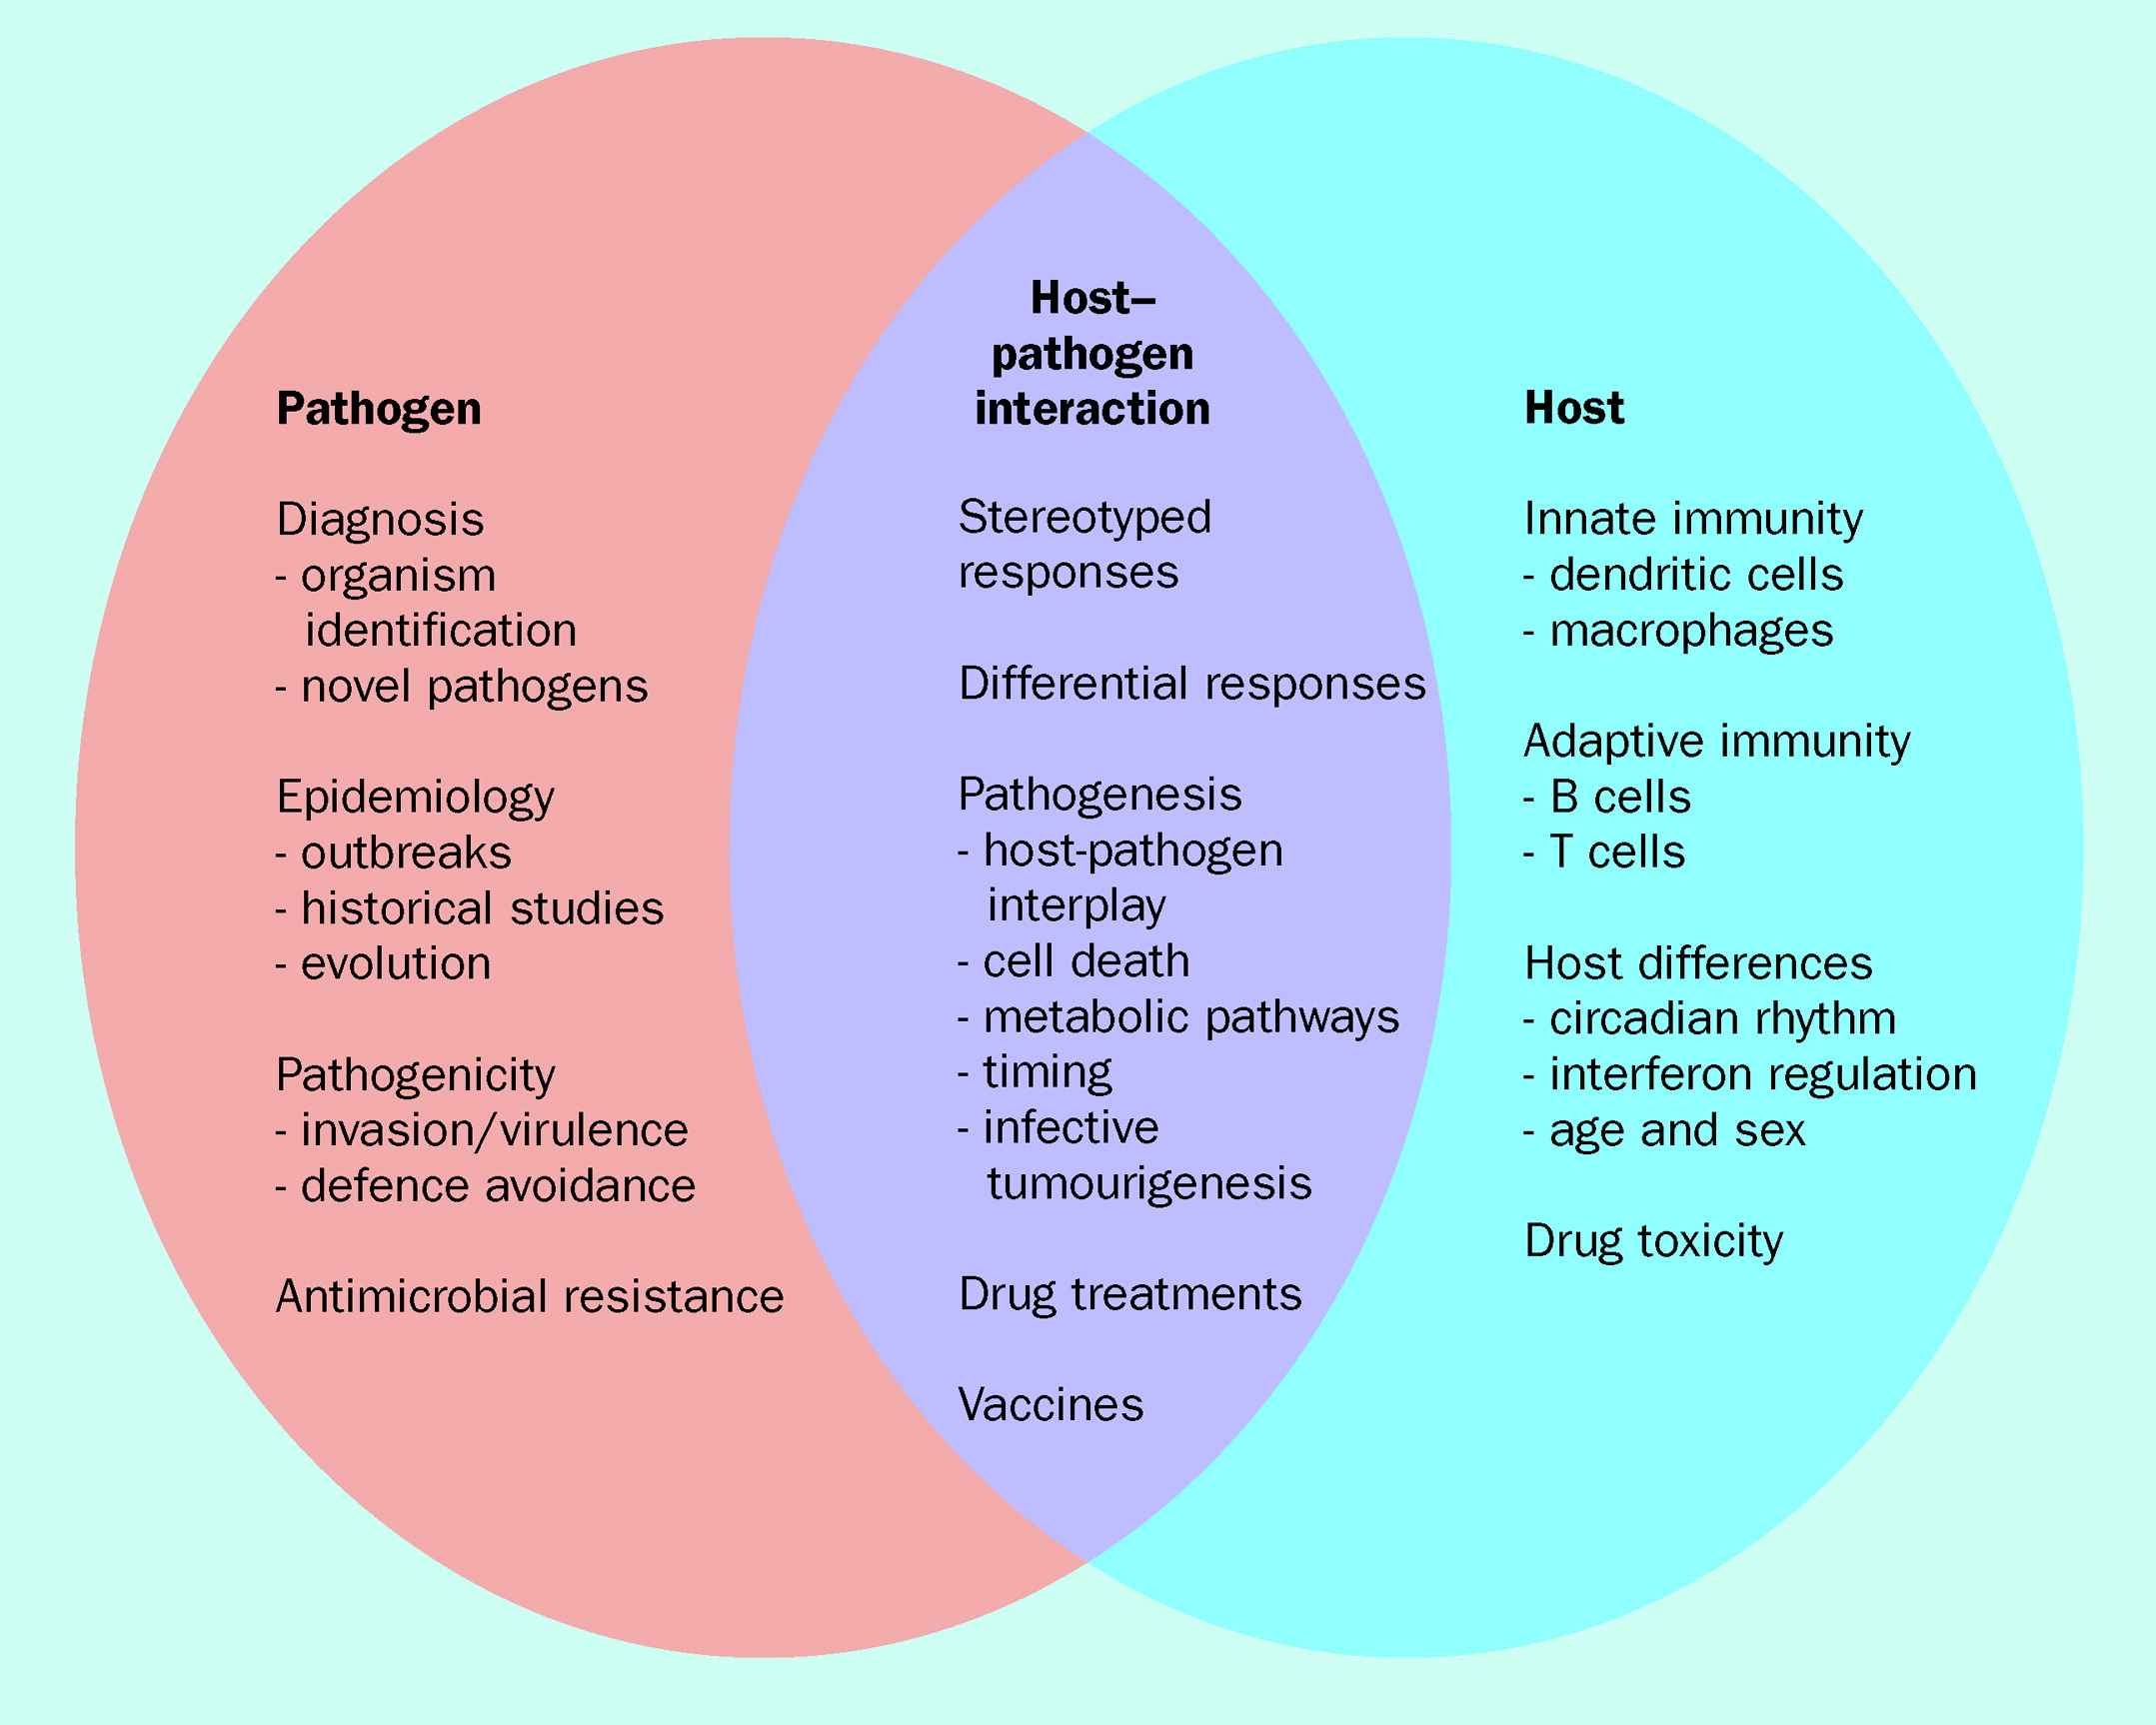 Bacteria And Virus Venn Diagram Virus And Cell Venn Diagram Erhayasamayolver